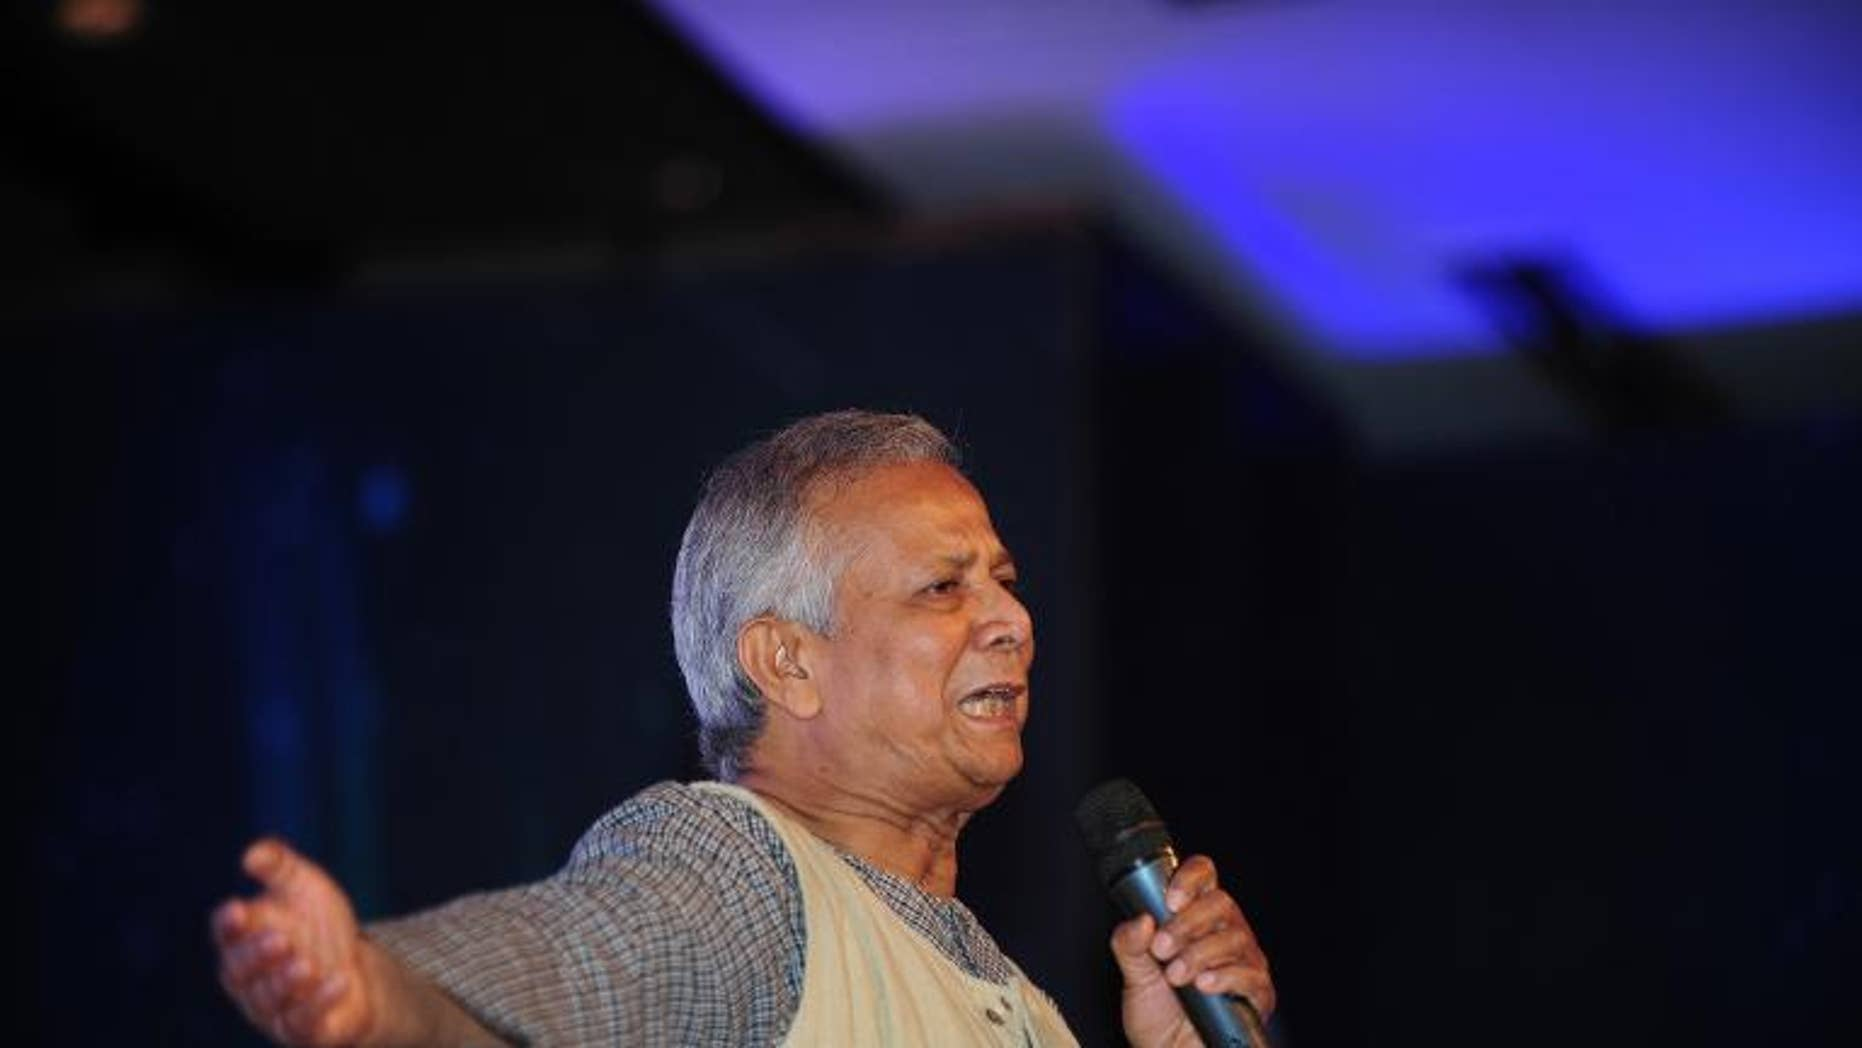 Nobel Laureate Professor Muhammad Yunus speaks in Dhaka on June 28, 2013